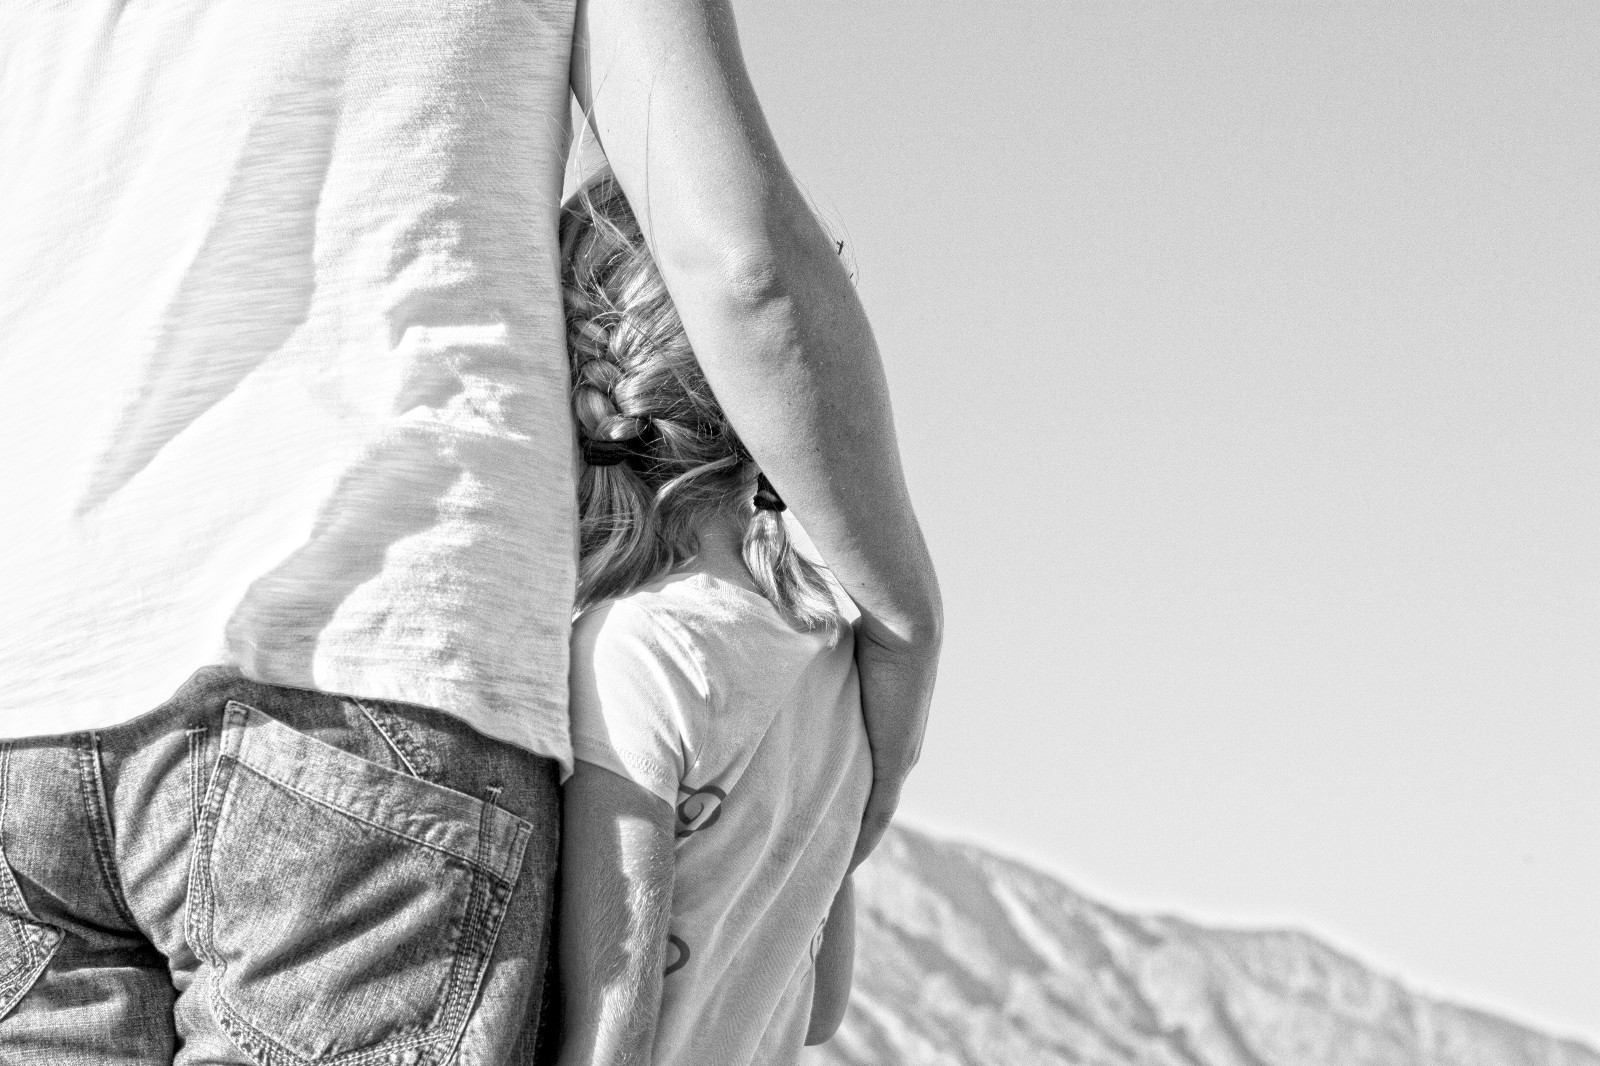 Father and daughter looking off into the distance in a half hug embrace. Black and White photo.